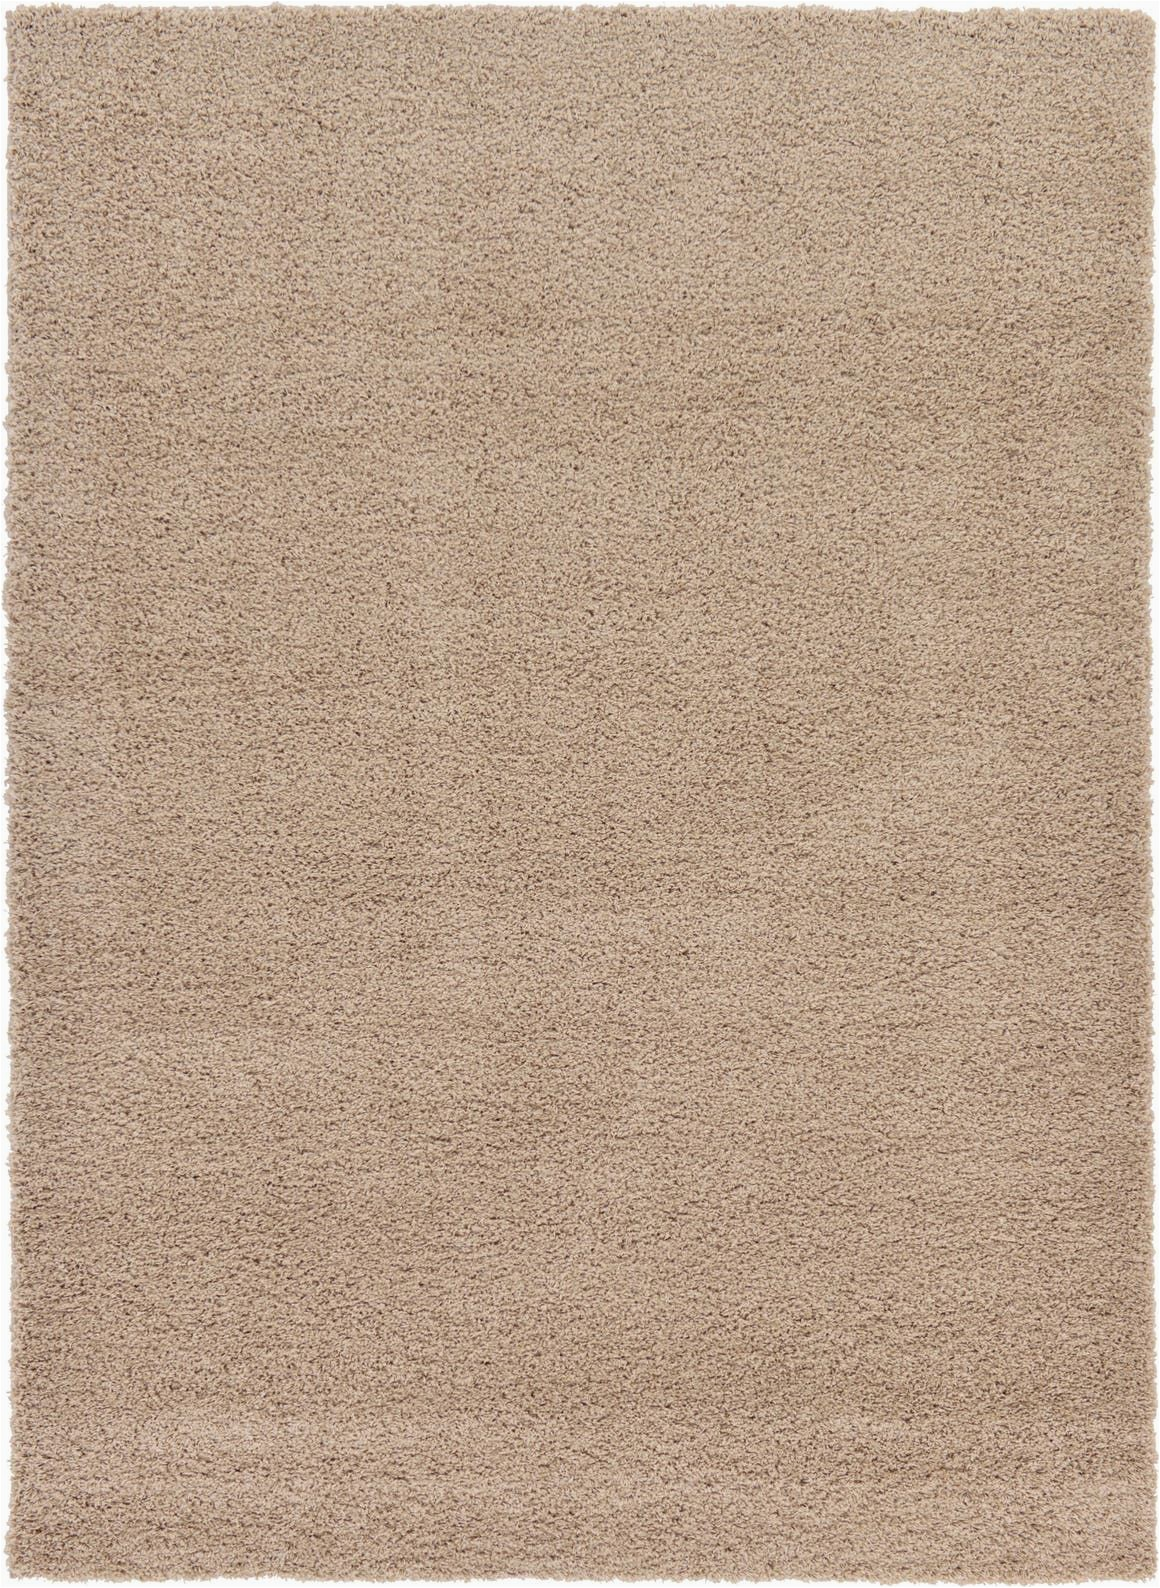 Taupe and Beige area Rugs Taupe solid Shag area Rug In 2020